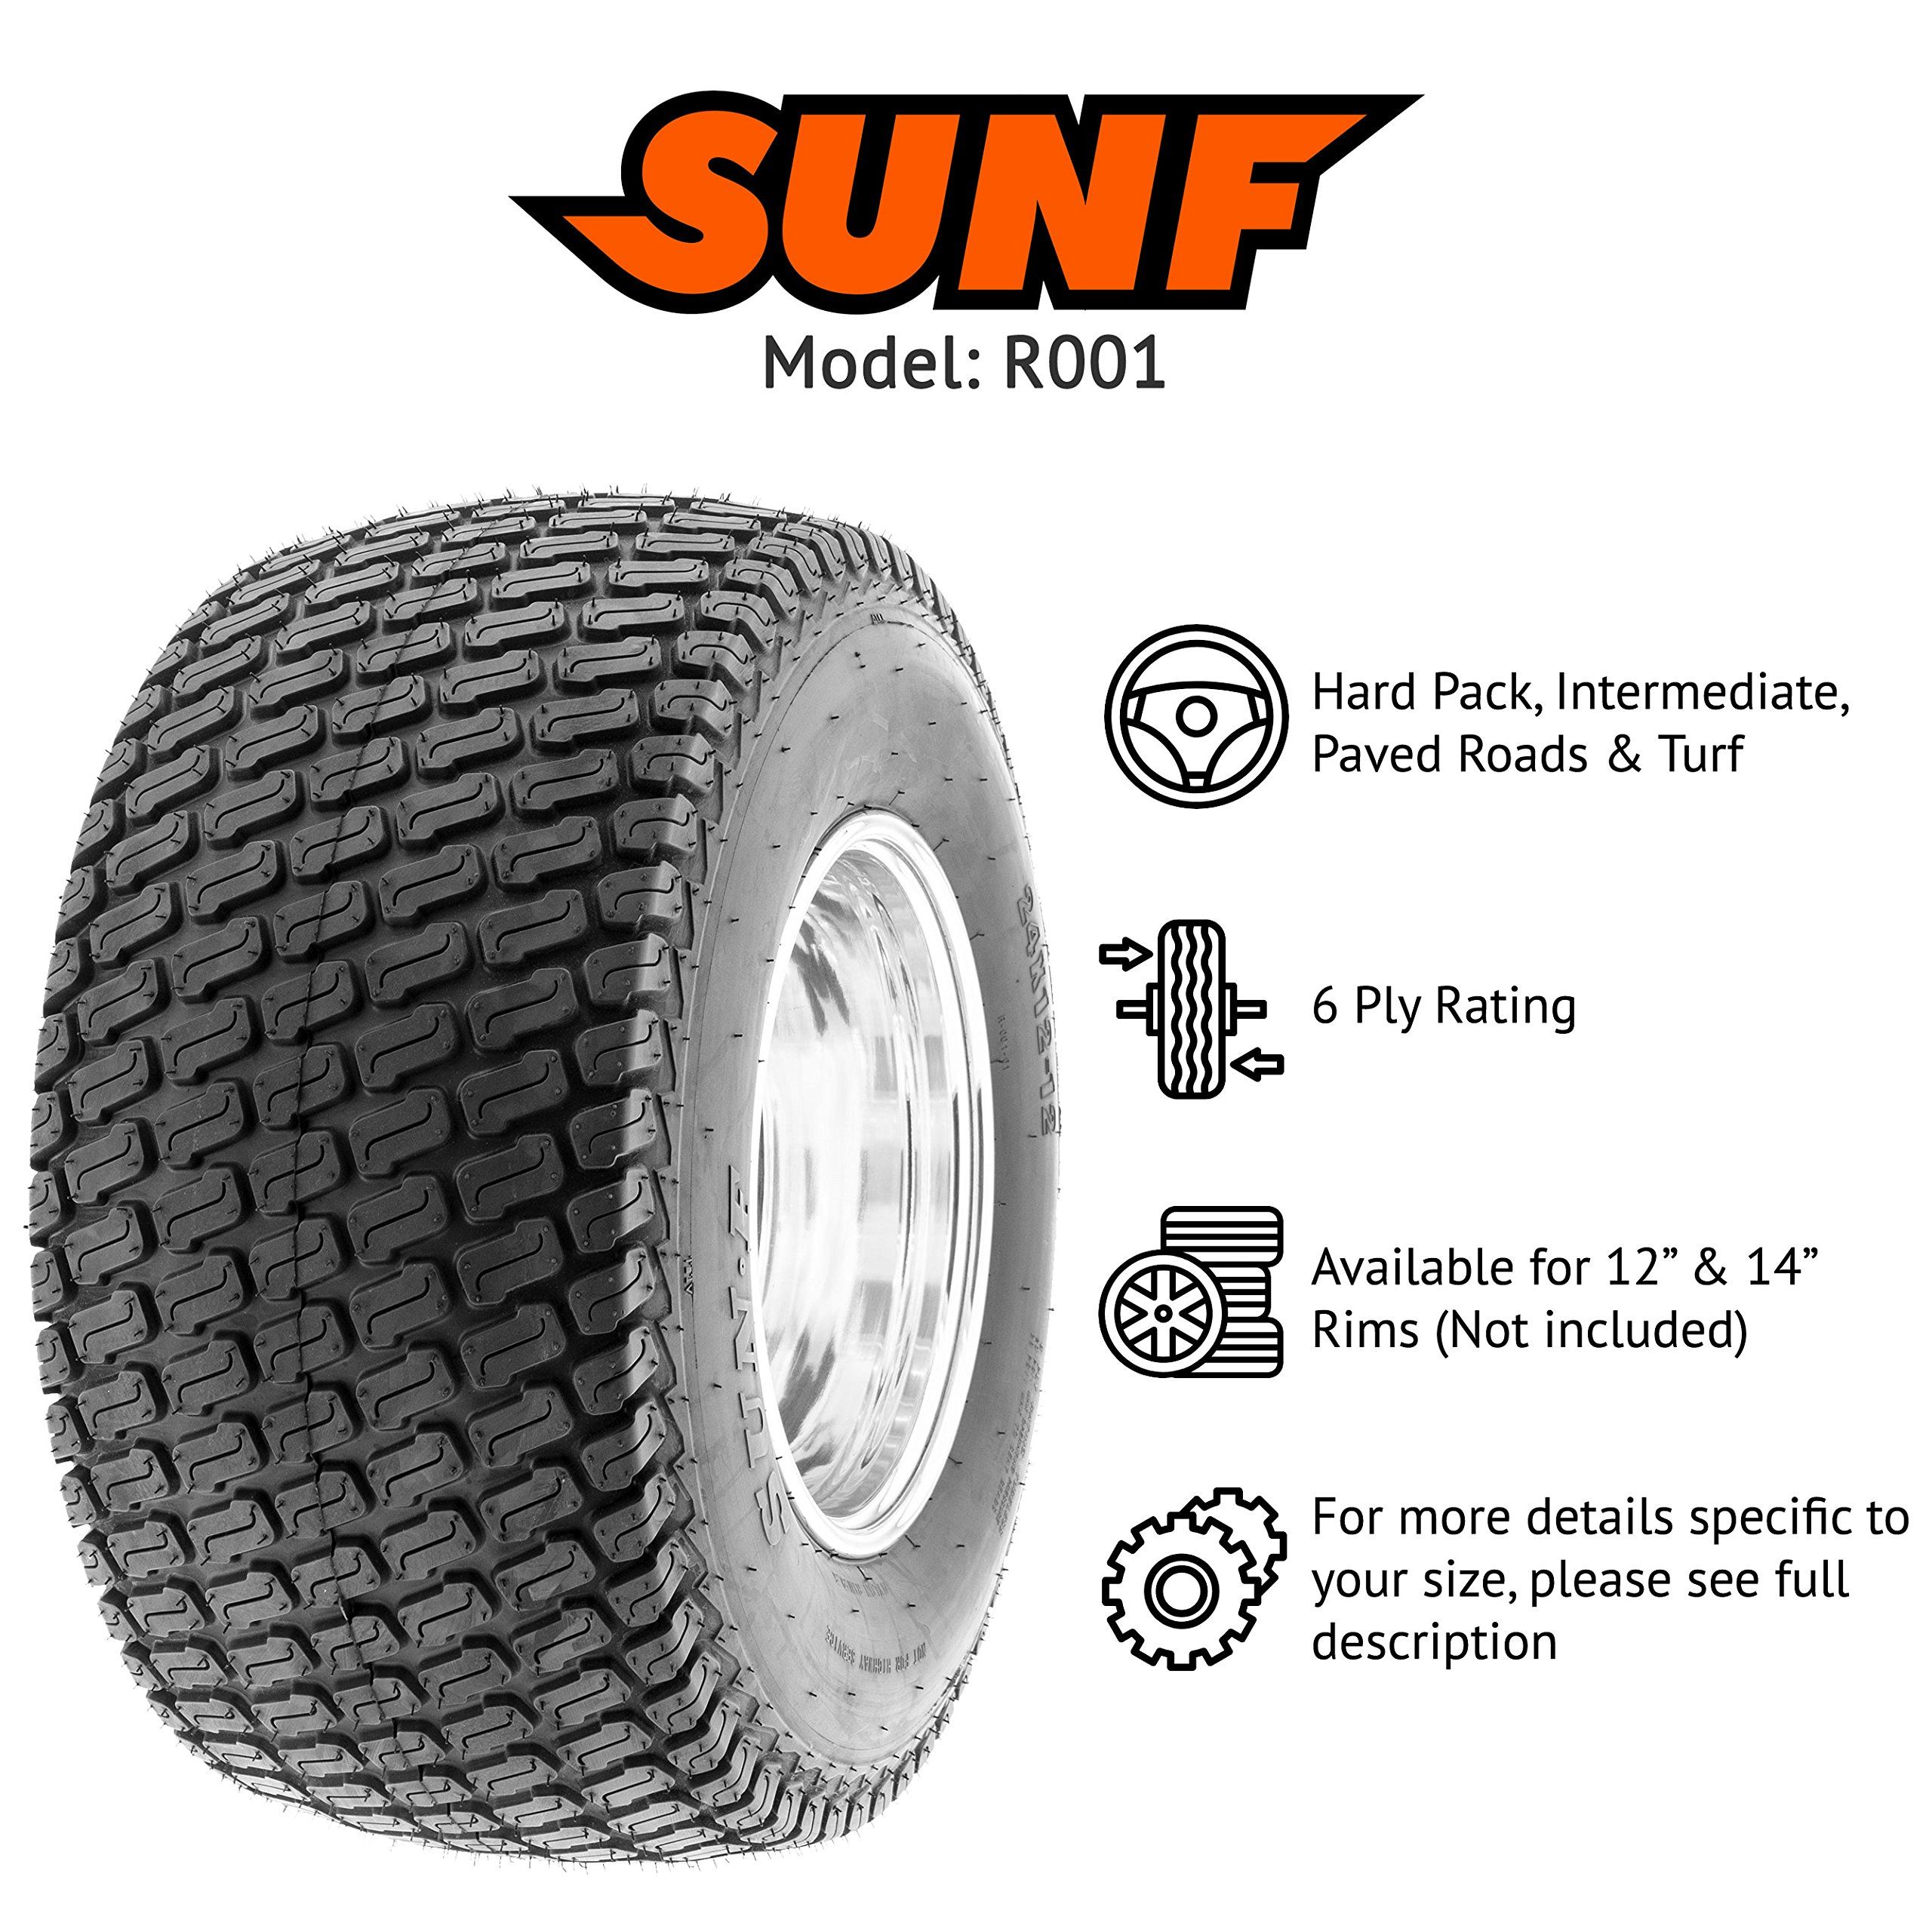 Sunf R001 Golf Cart Lawn Mower Garden Tractor Utv Turf Tire 24x1212 6 Pr Tubeless Details Can Be Found By Clickin Automotive Tires Garden Tractor Golf Carts